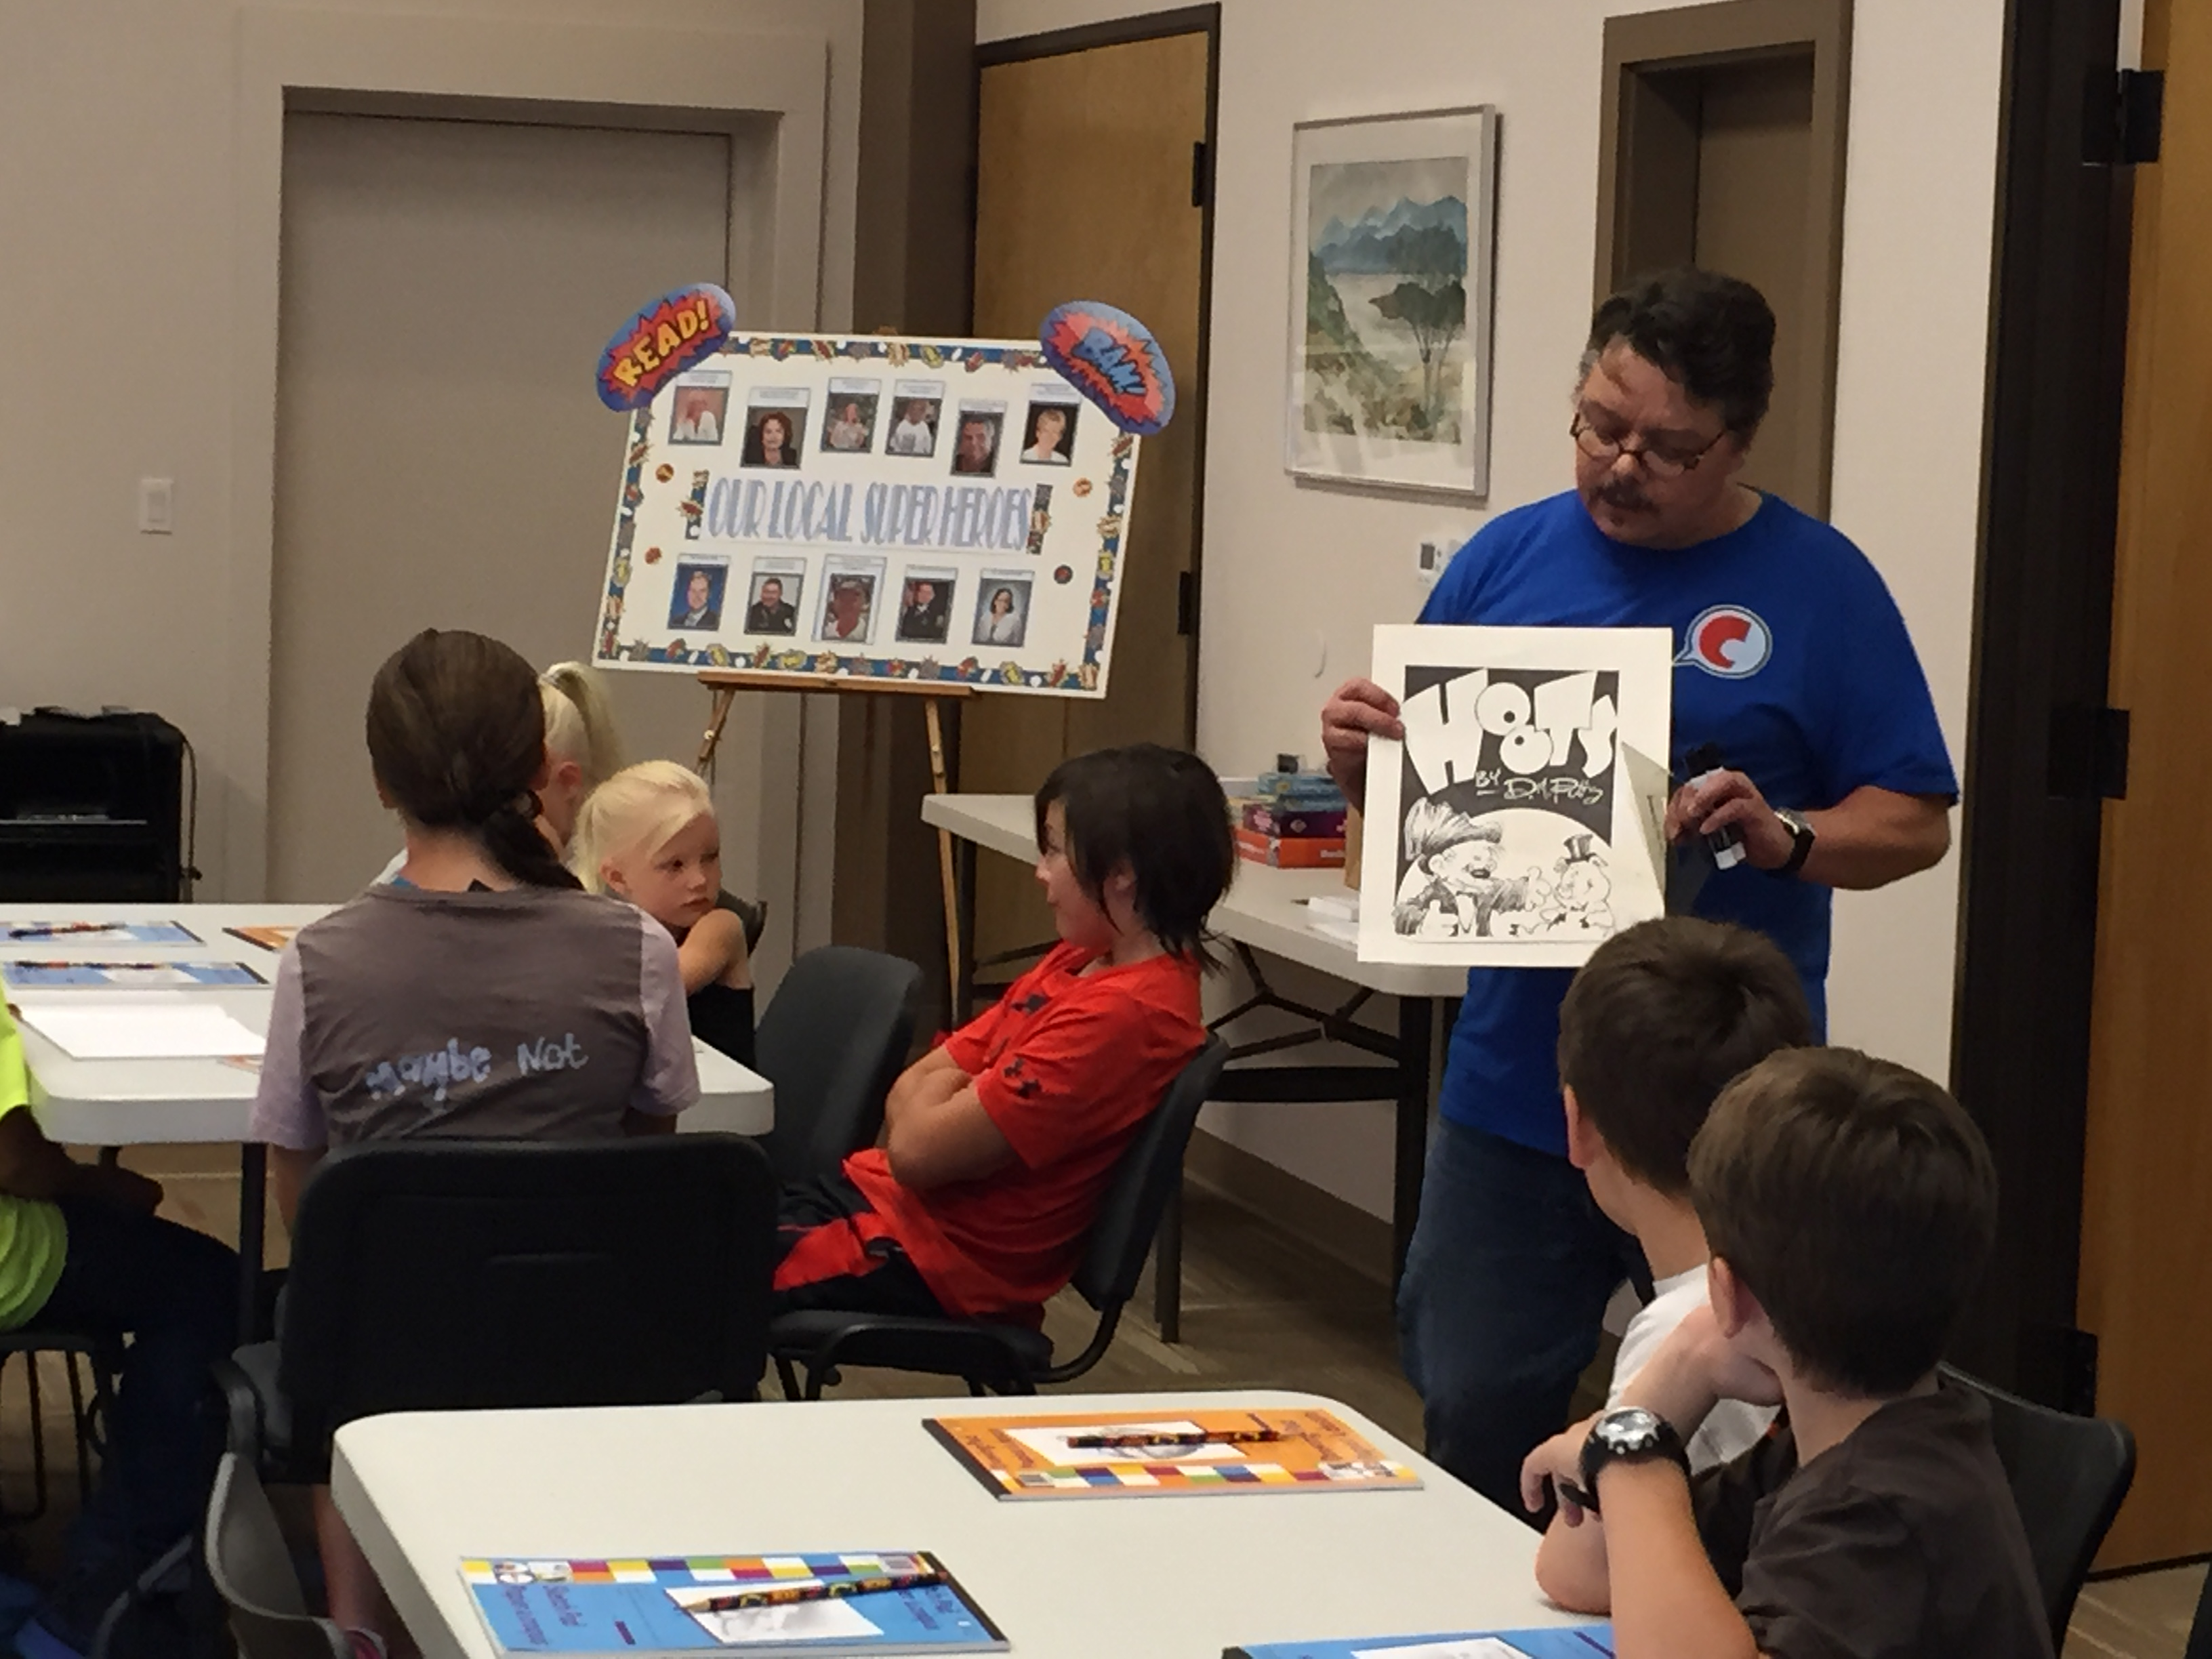 Cartoonist and comedian David Pitts teaches a Cartoon Class hands-on cartooning workshop to a group of children at the Lago Vista Tx. Library